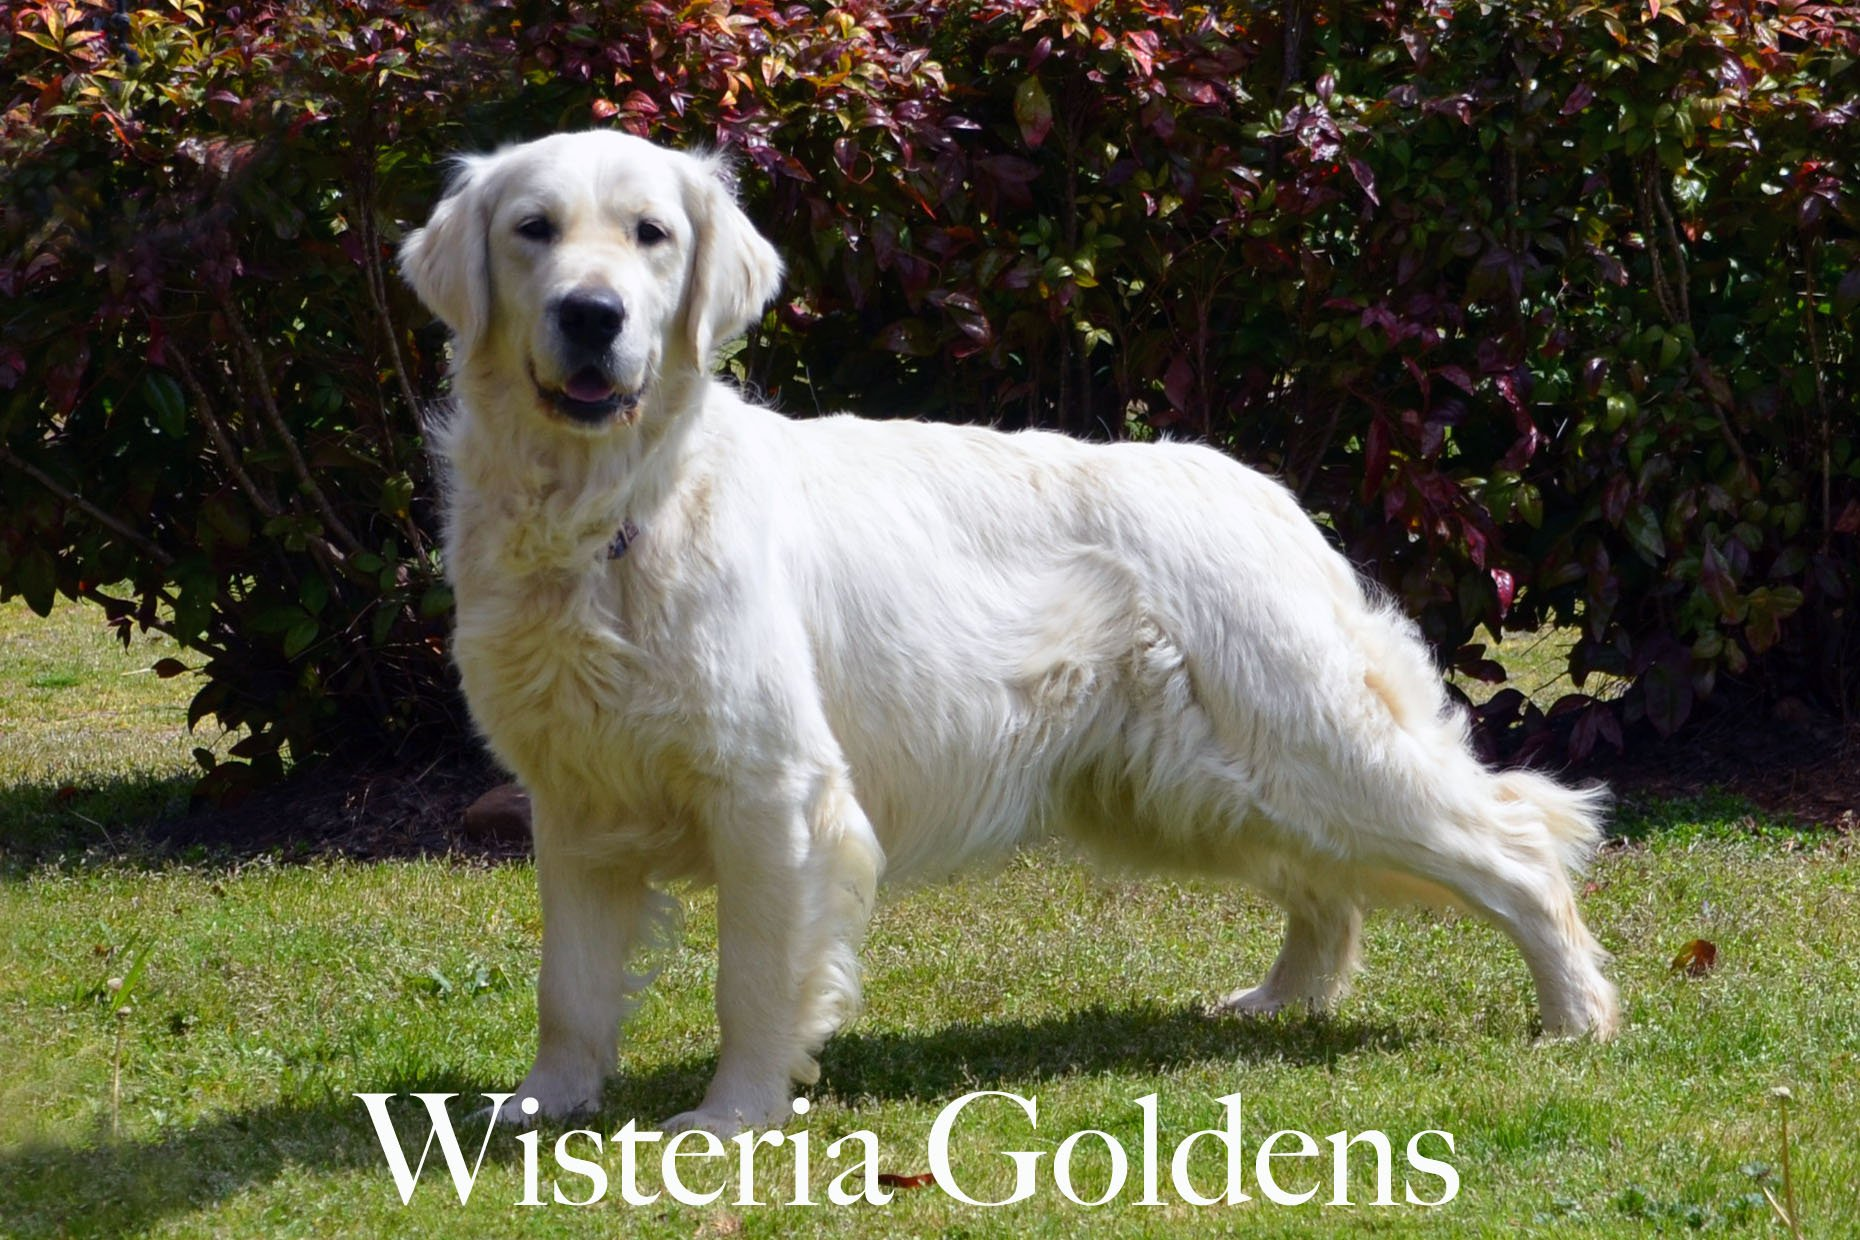 Harmony-3-harmony-full-english-creme-goldens-retrievers-wisteria-goldens